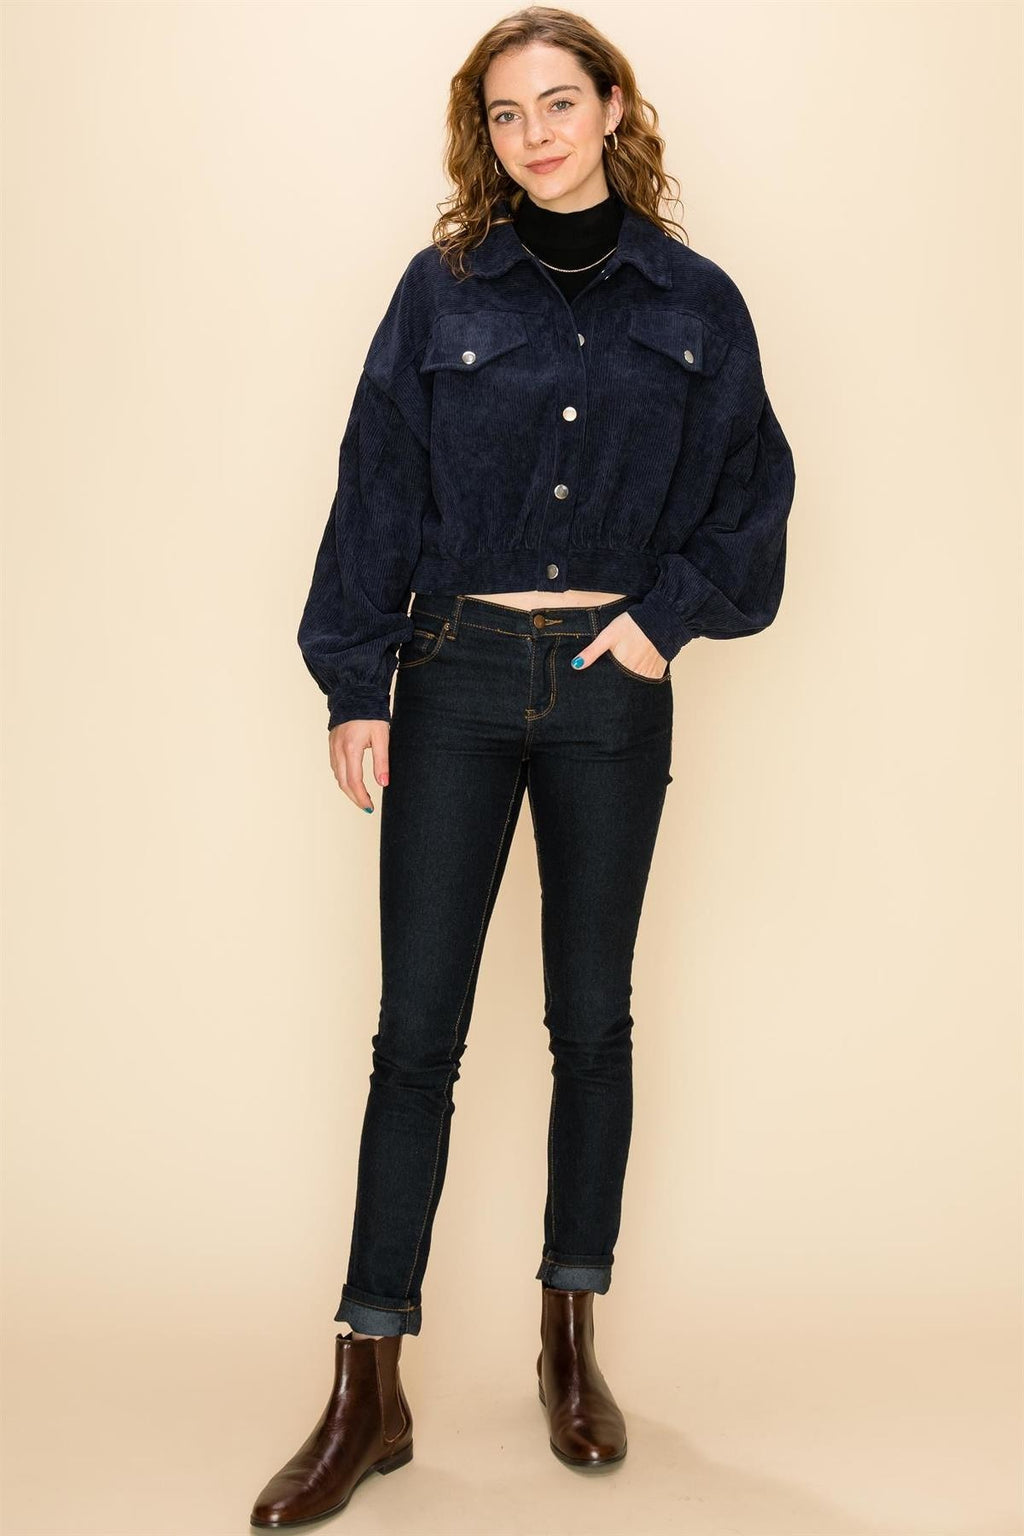 Let's Get Button Down Navy Corduroy Button Cropped Jacket